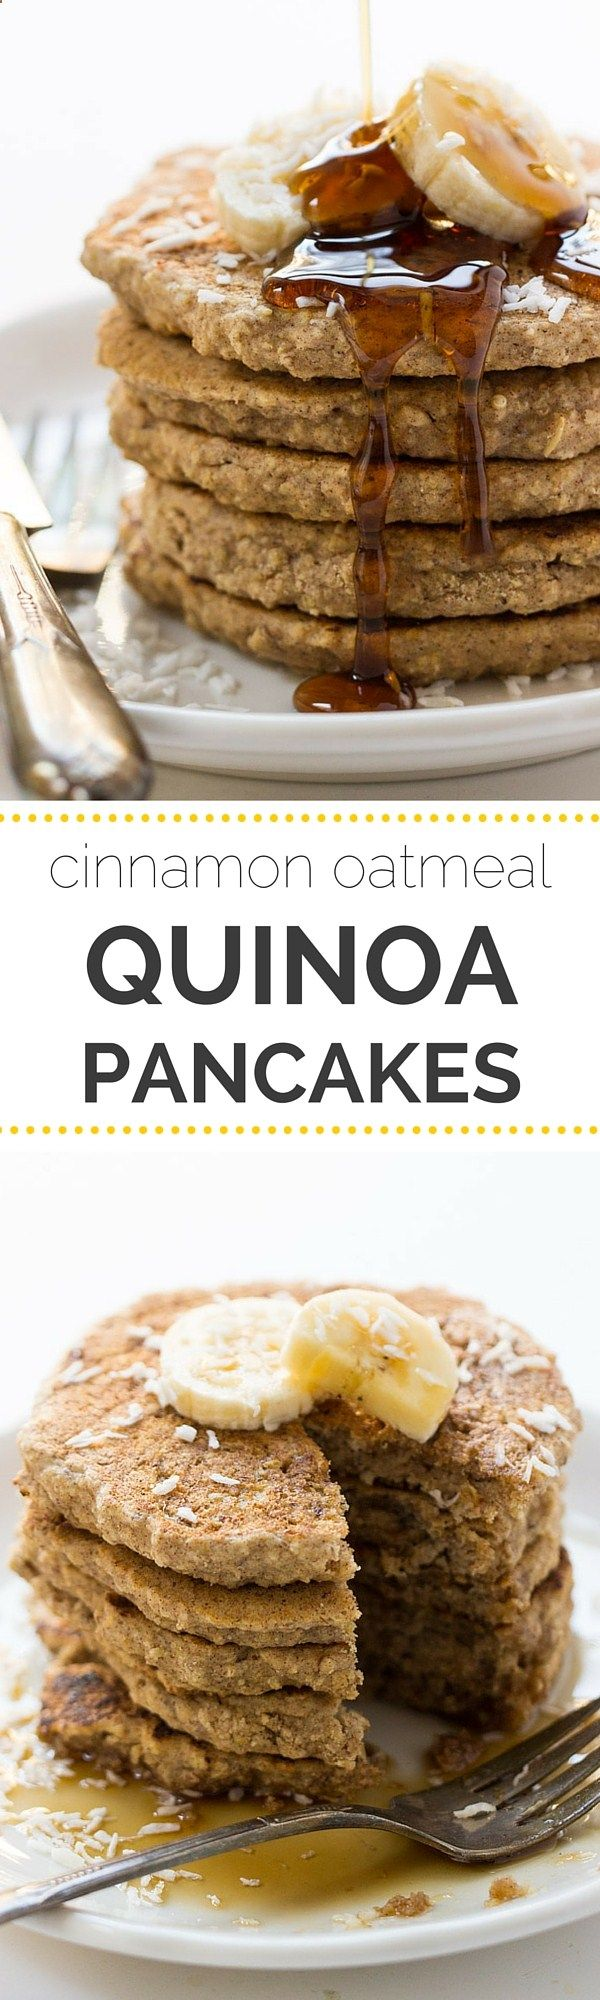 These HEALTHY quinoa pancakes are vegan, gluten-free and refined sugar free | recipe on simplyquinoa.com